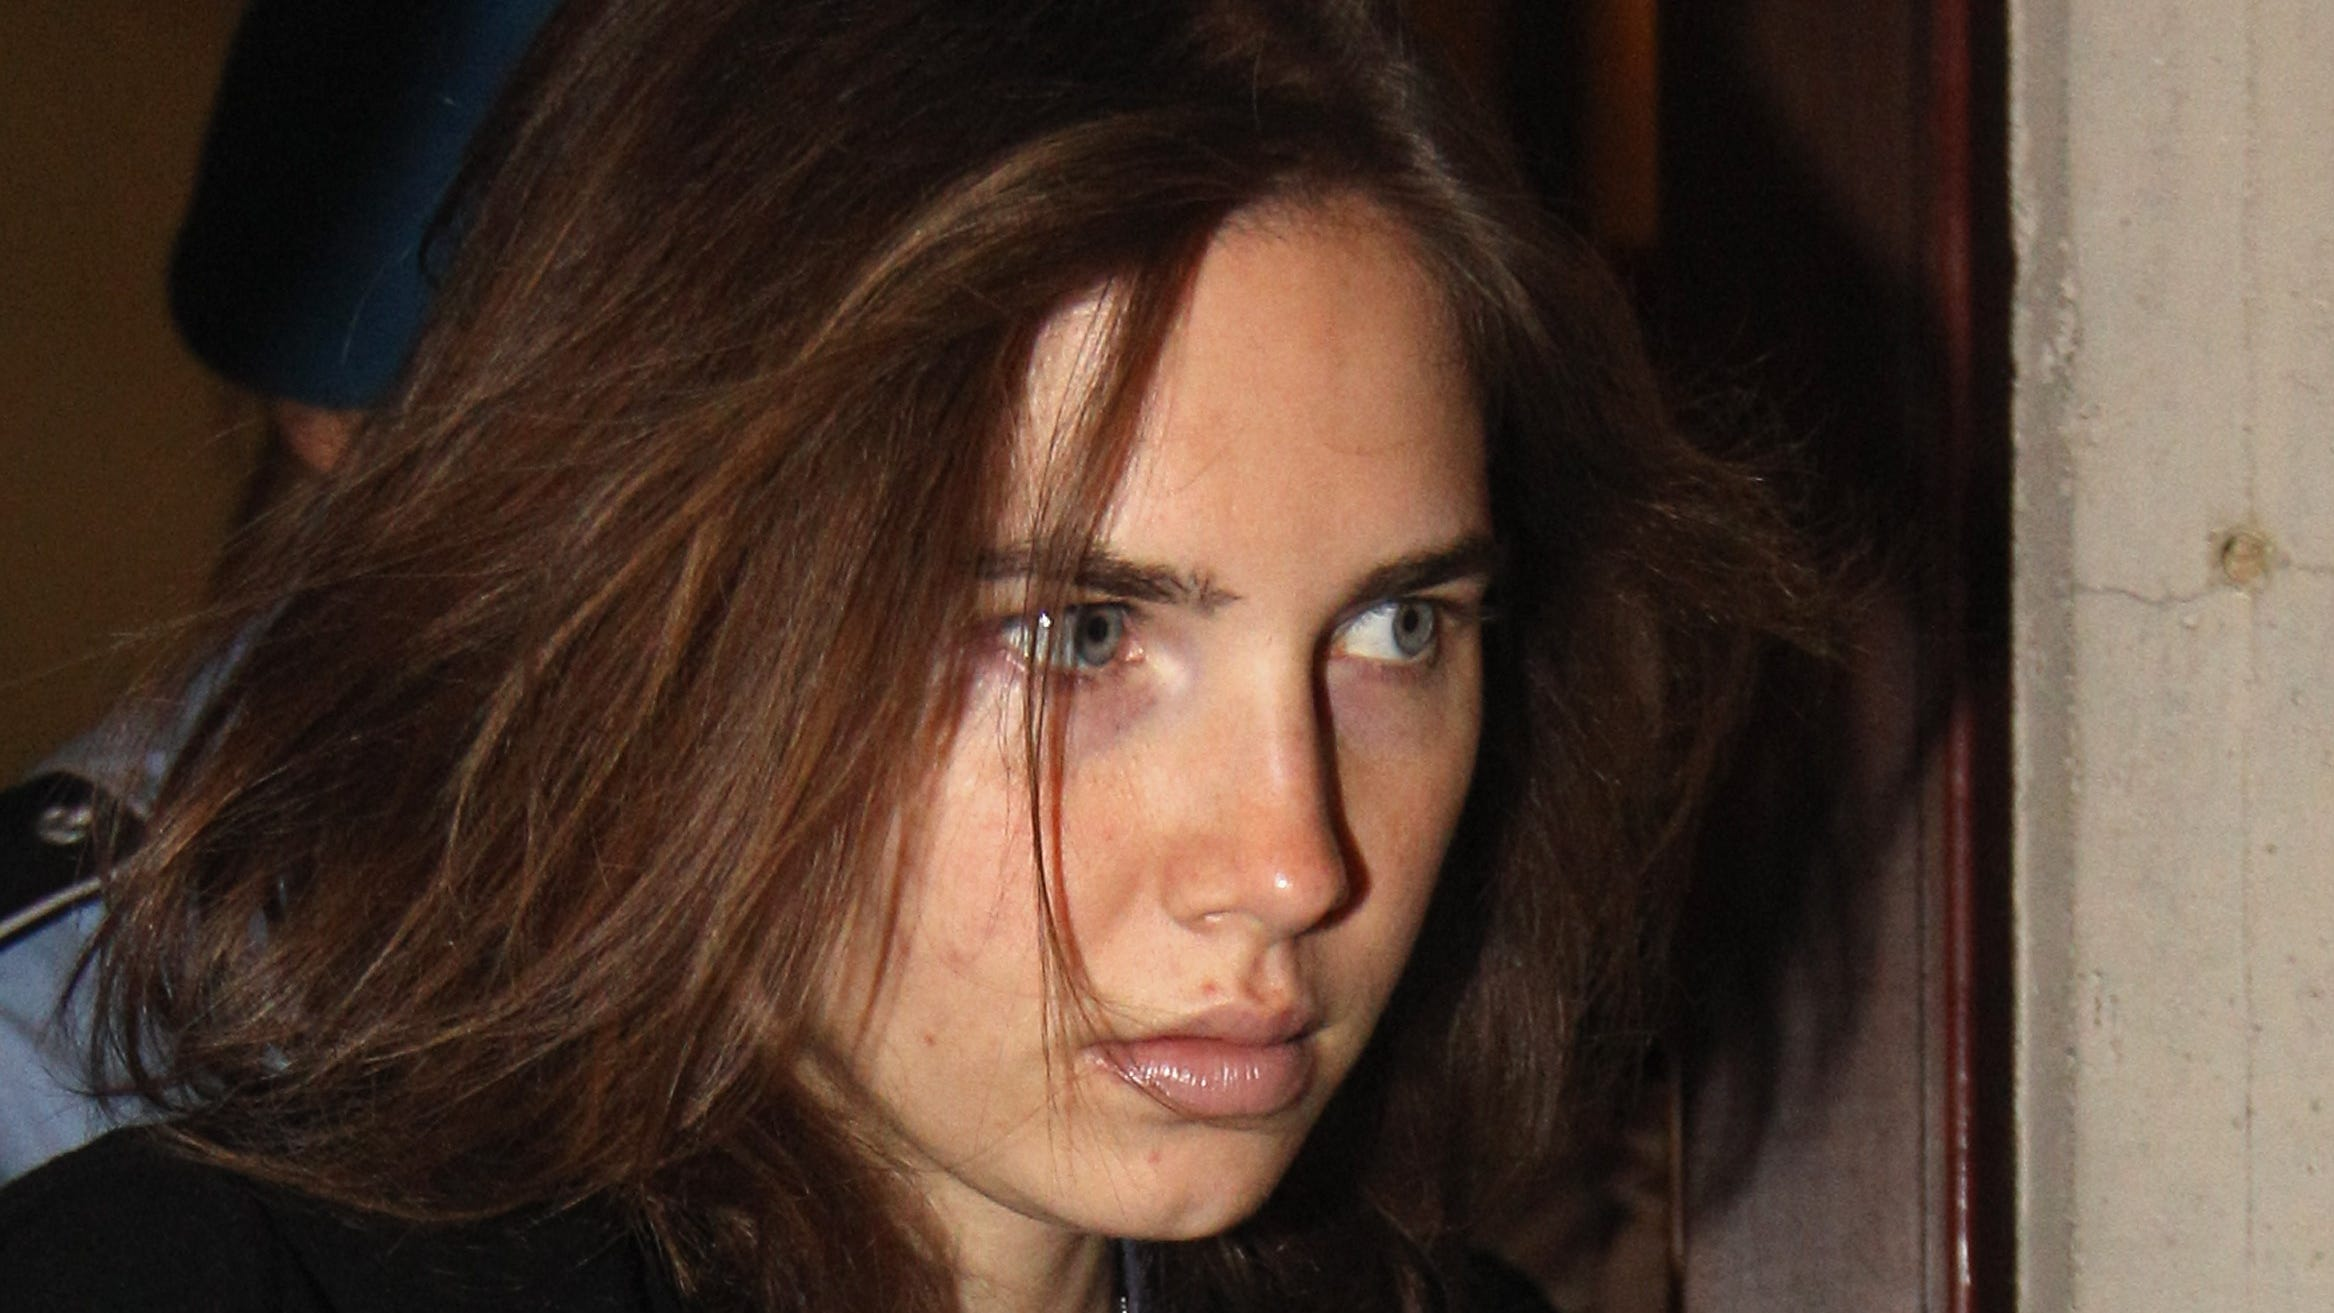 Forum on this topic: Amanda Knox is guiltybut is this the , amanda-knox-is-guiltybut-is-this-the/